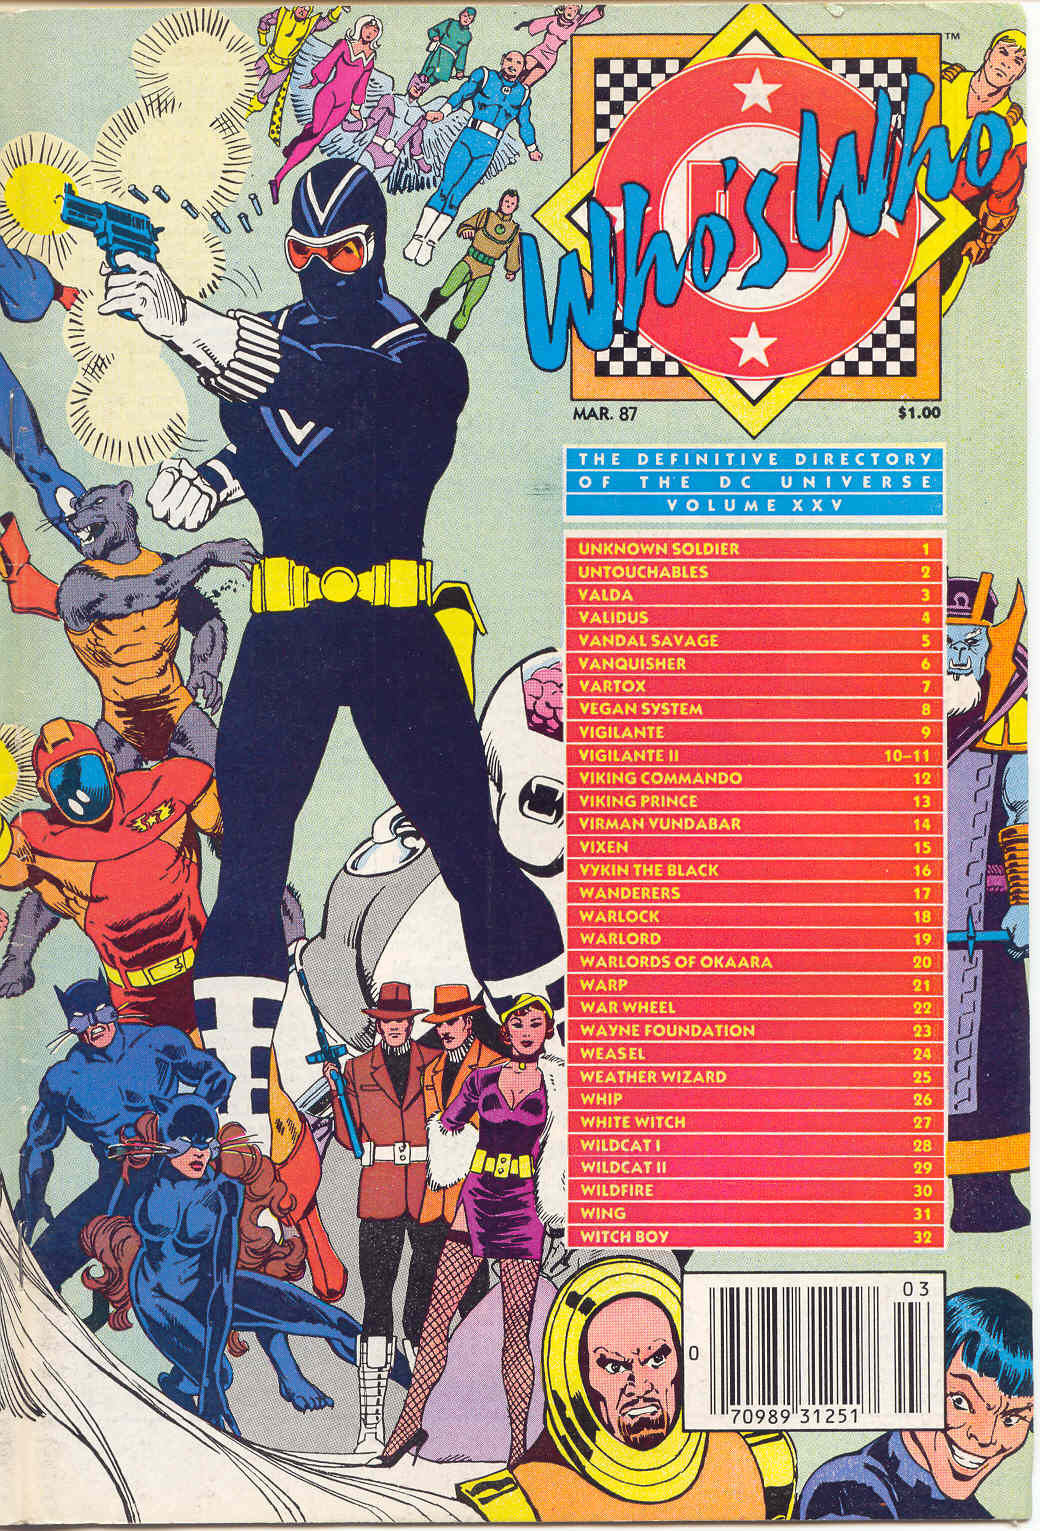 Whos Who: The Definitive Directory of the DC Universe 25 Page 1